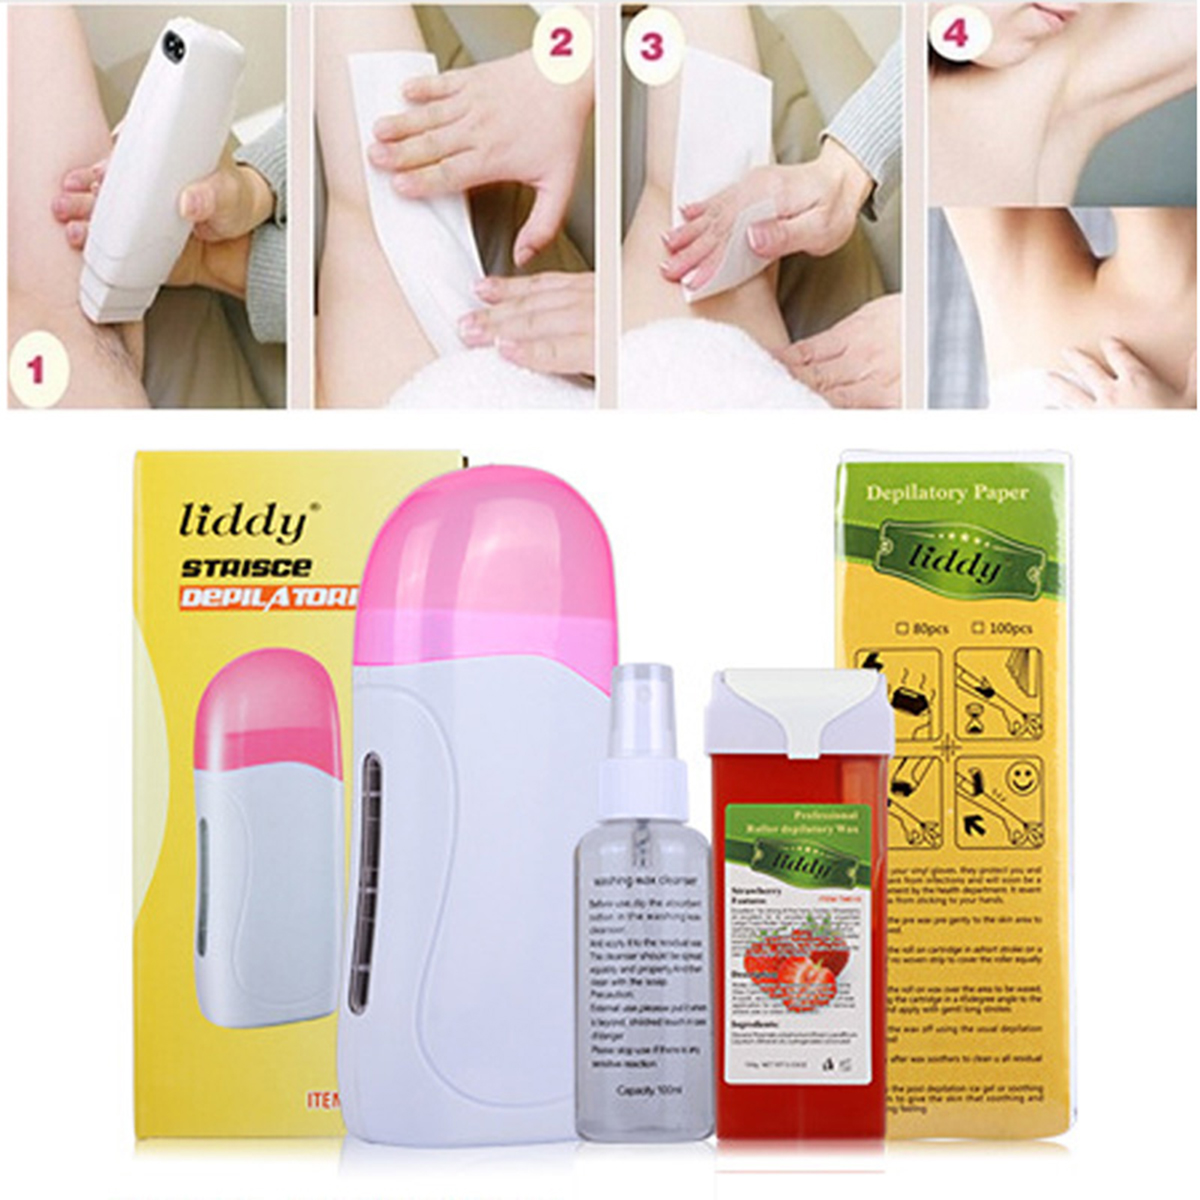 Electric Hair Removal Care Sets Heater Waxing Depilator Epilator Machine Hair Remove Wax Kit SKU693165